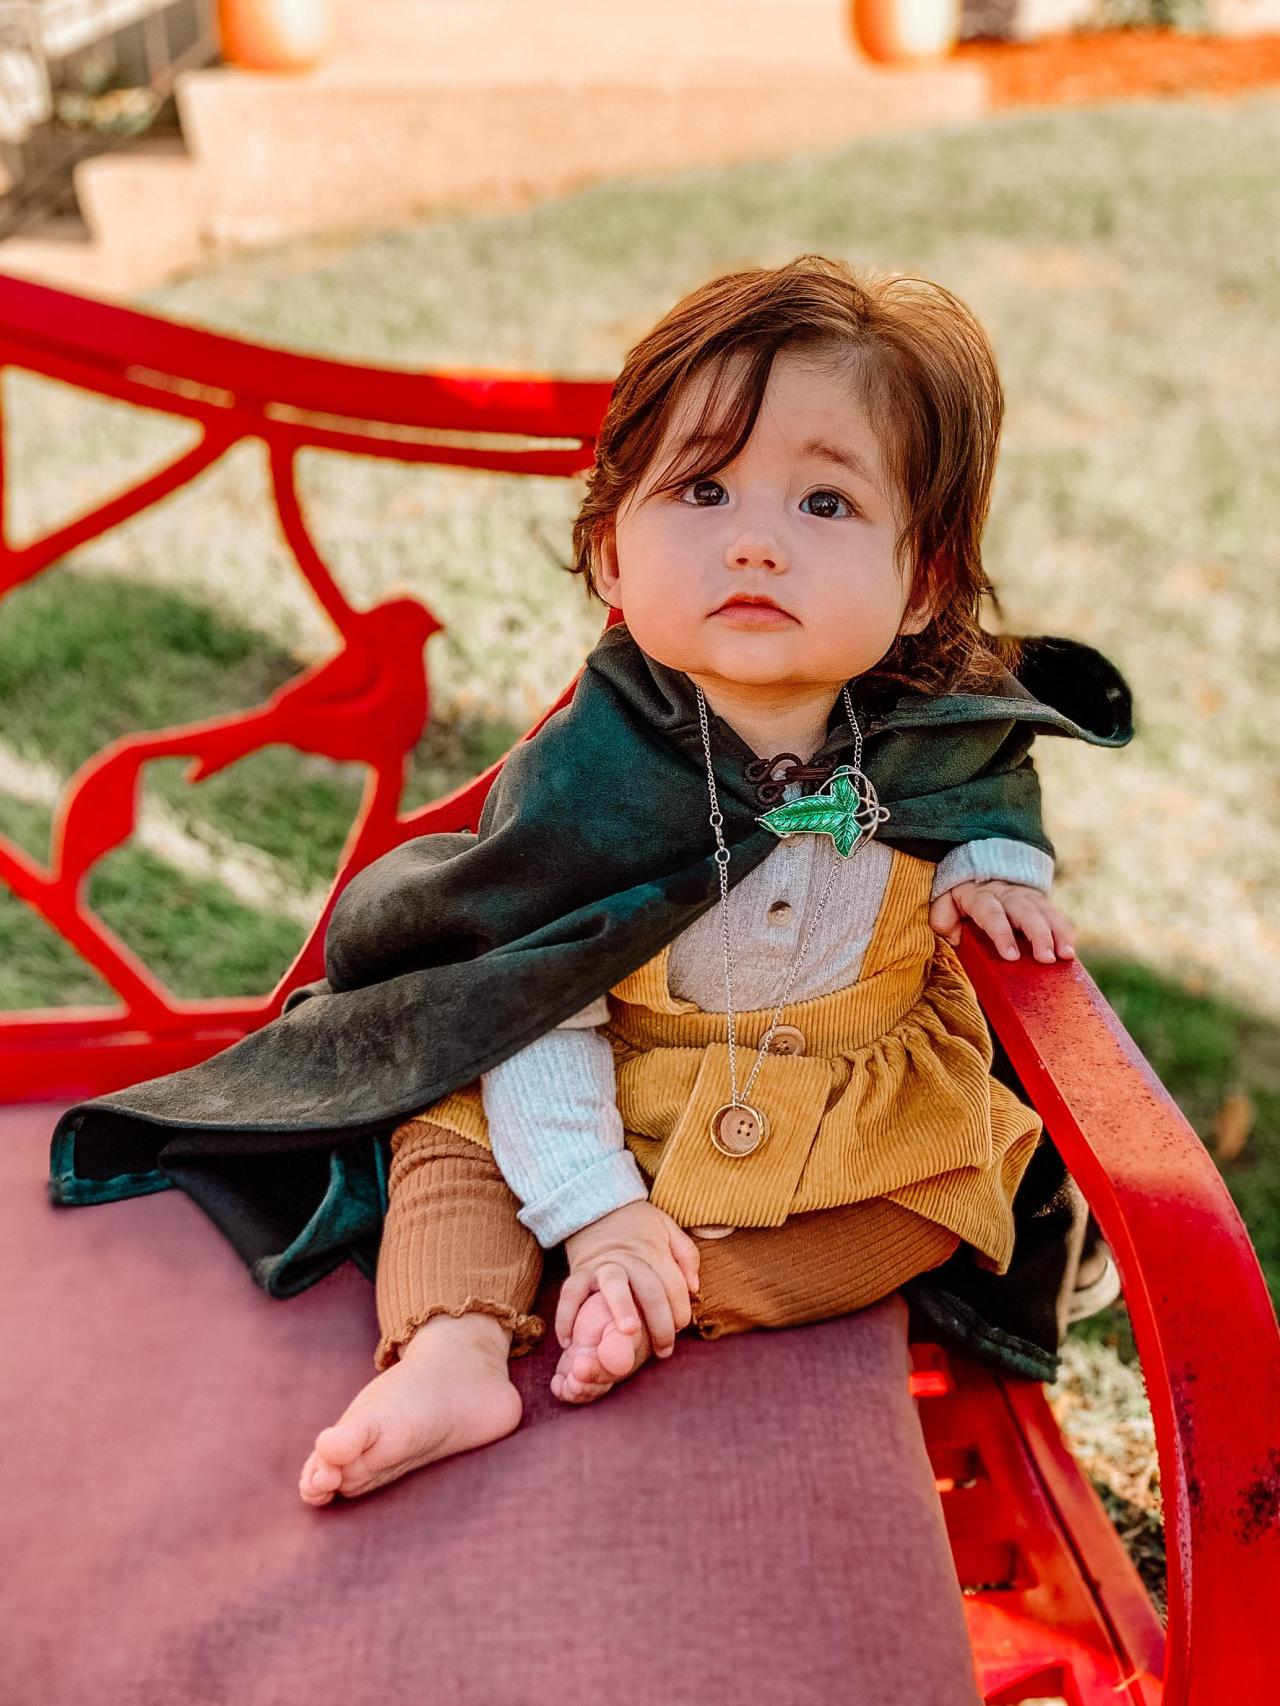 Baby hobbit! We made the cloak ourselves and it turned out better than expected Source: https://ift.tt/3jwgorN #lord of the rings online  #lord of the rings wiki  #lord of the rings cast  #lord of the rings shop #lo